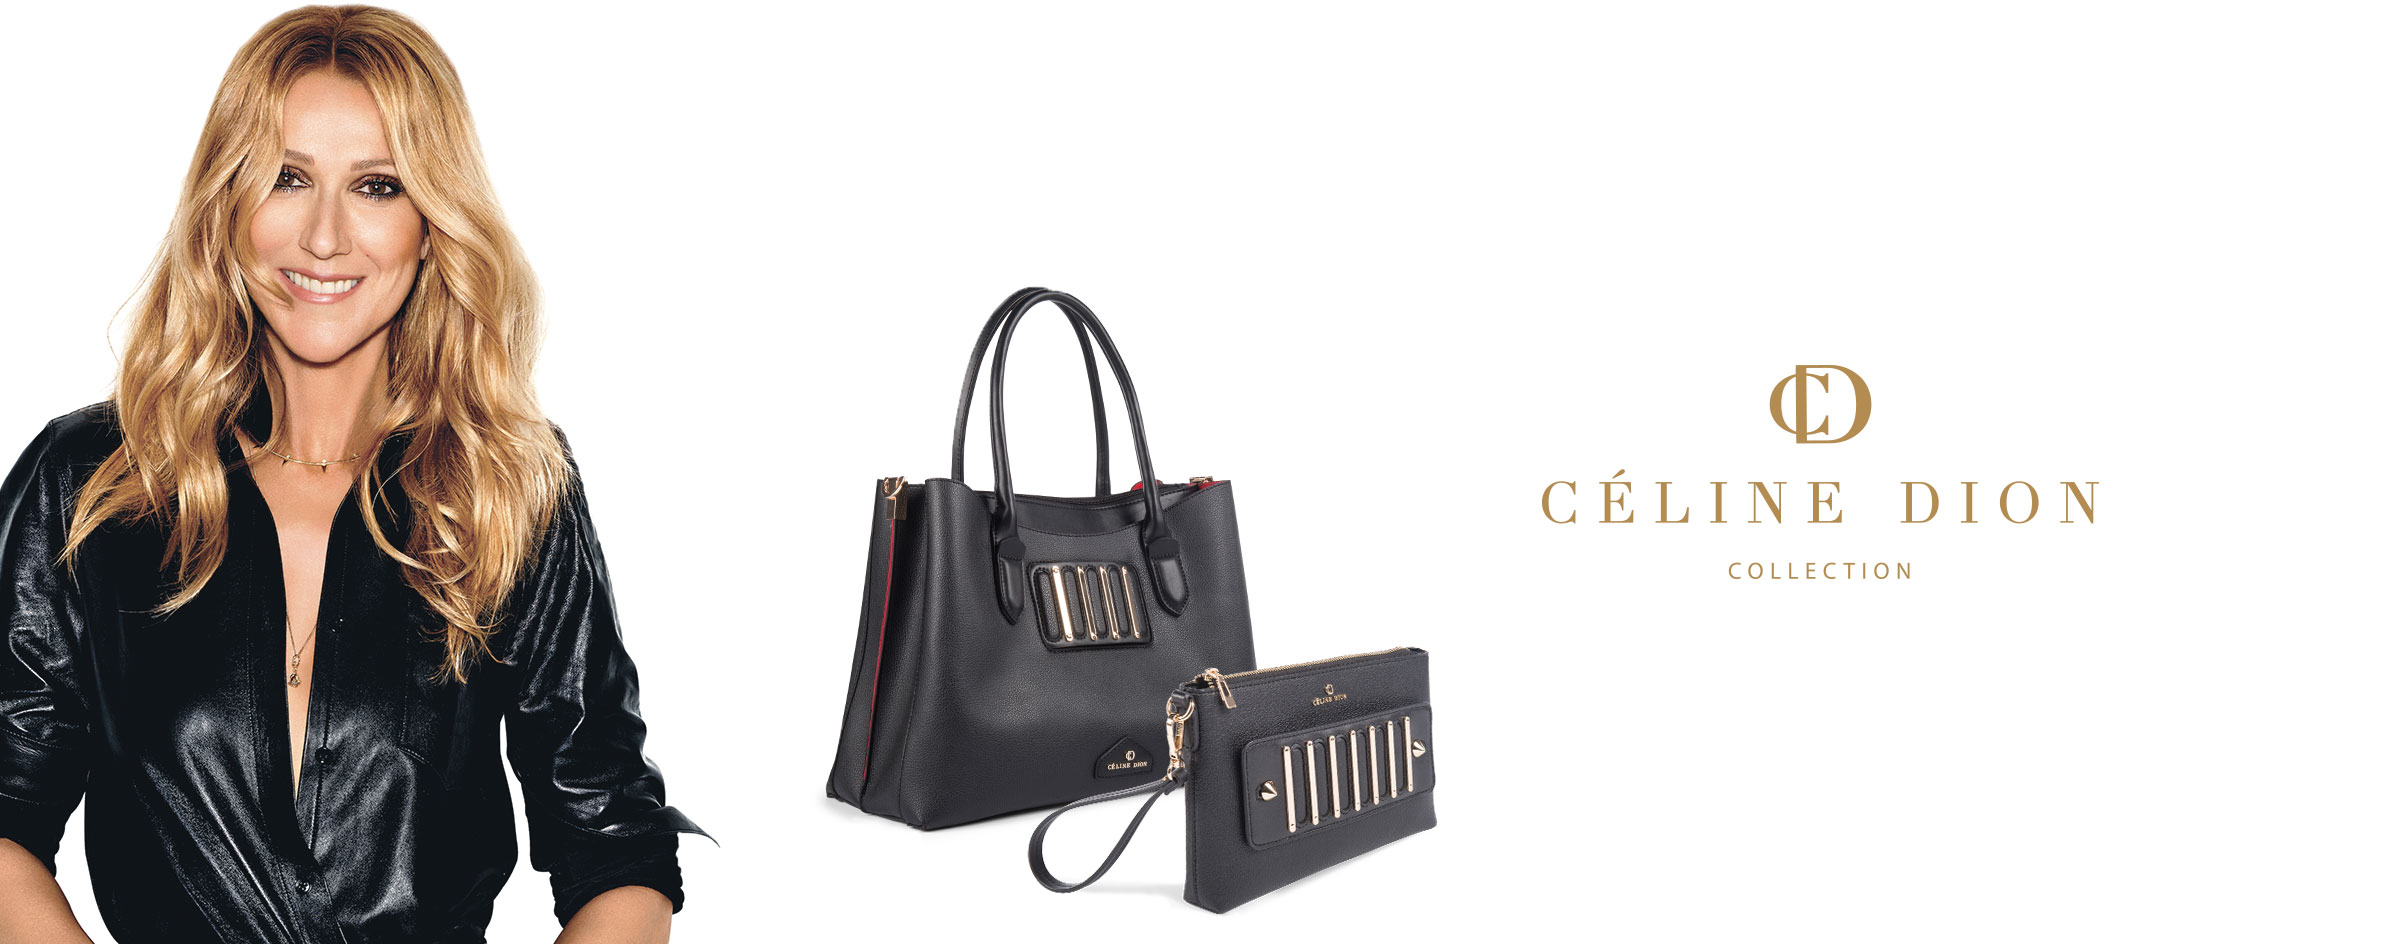 Céline Dion Collection - Classic & luxurious handbags with flair, designed with Céline's personal touch. Available online and at these locations - Early September.